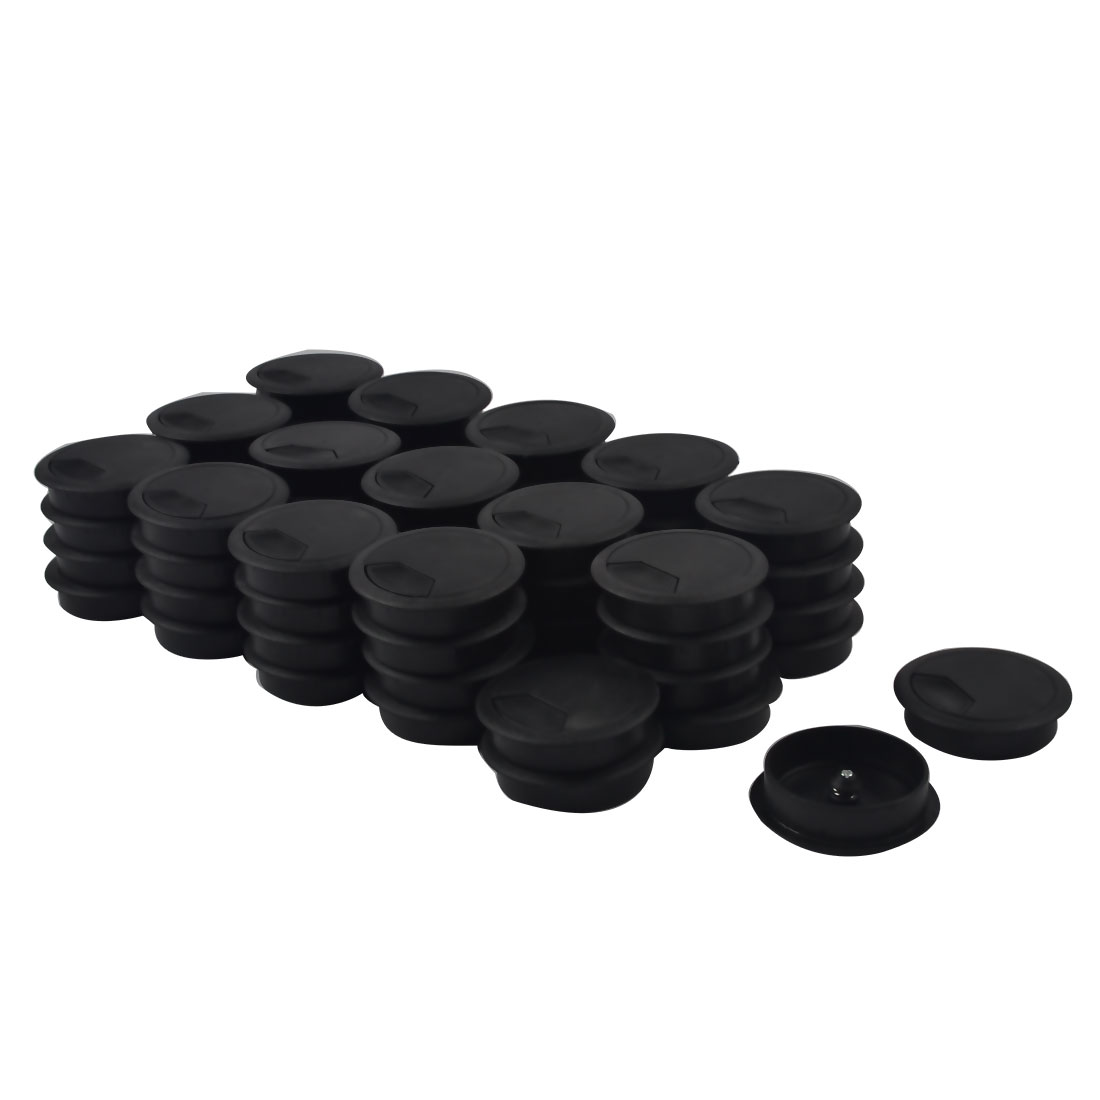 Computer Table Plastic Round Grommet Wire Cord Cable Hole Cover Black 60mm Dia 60pcs